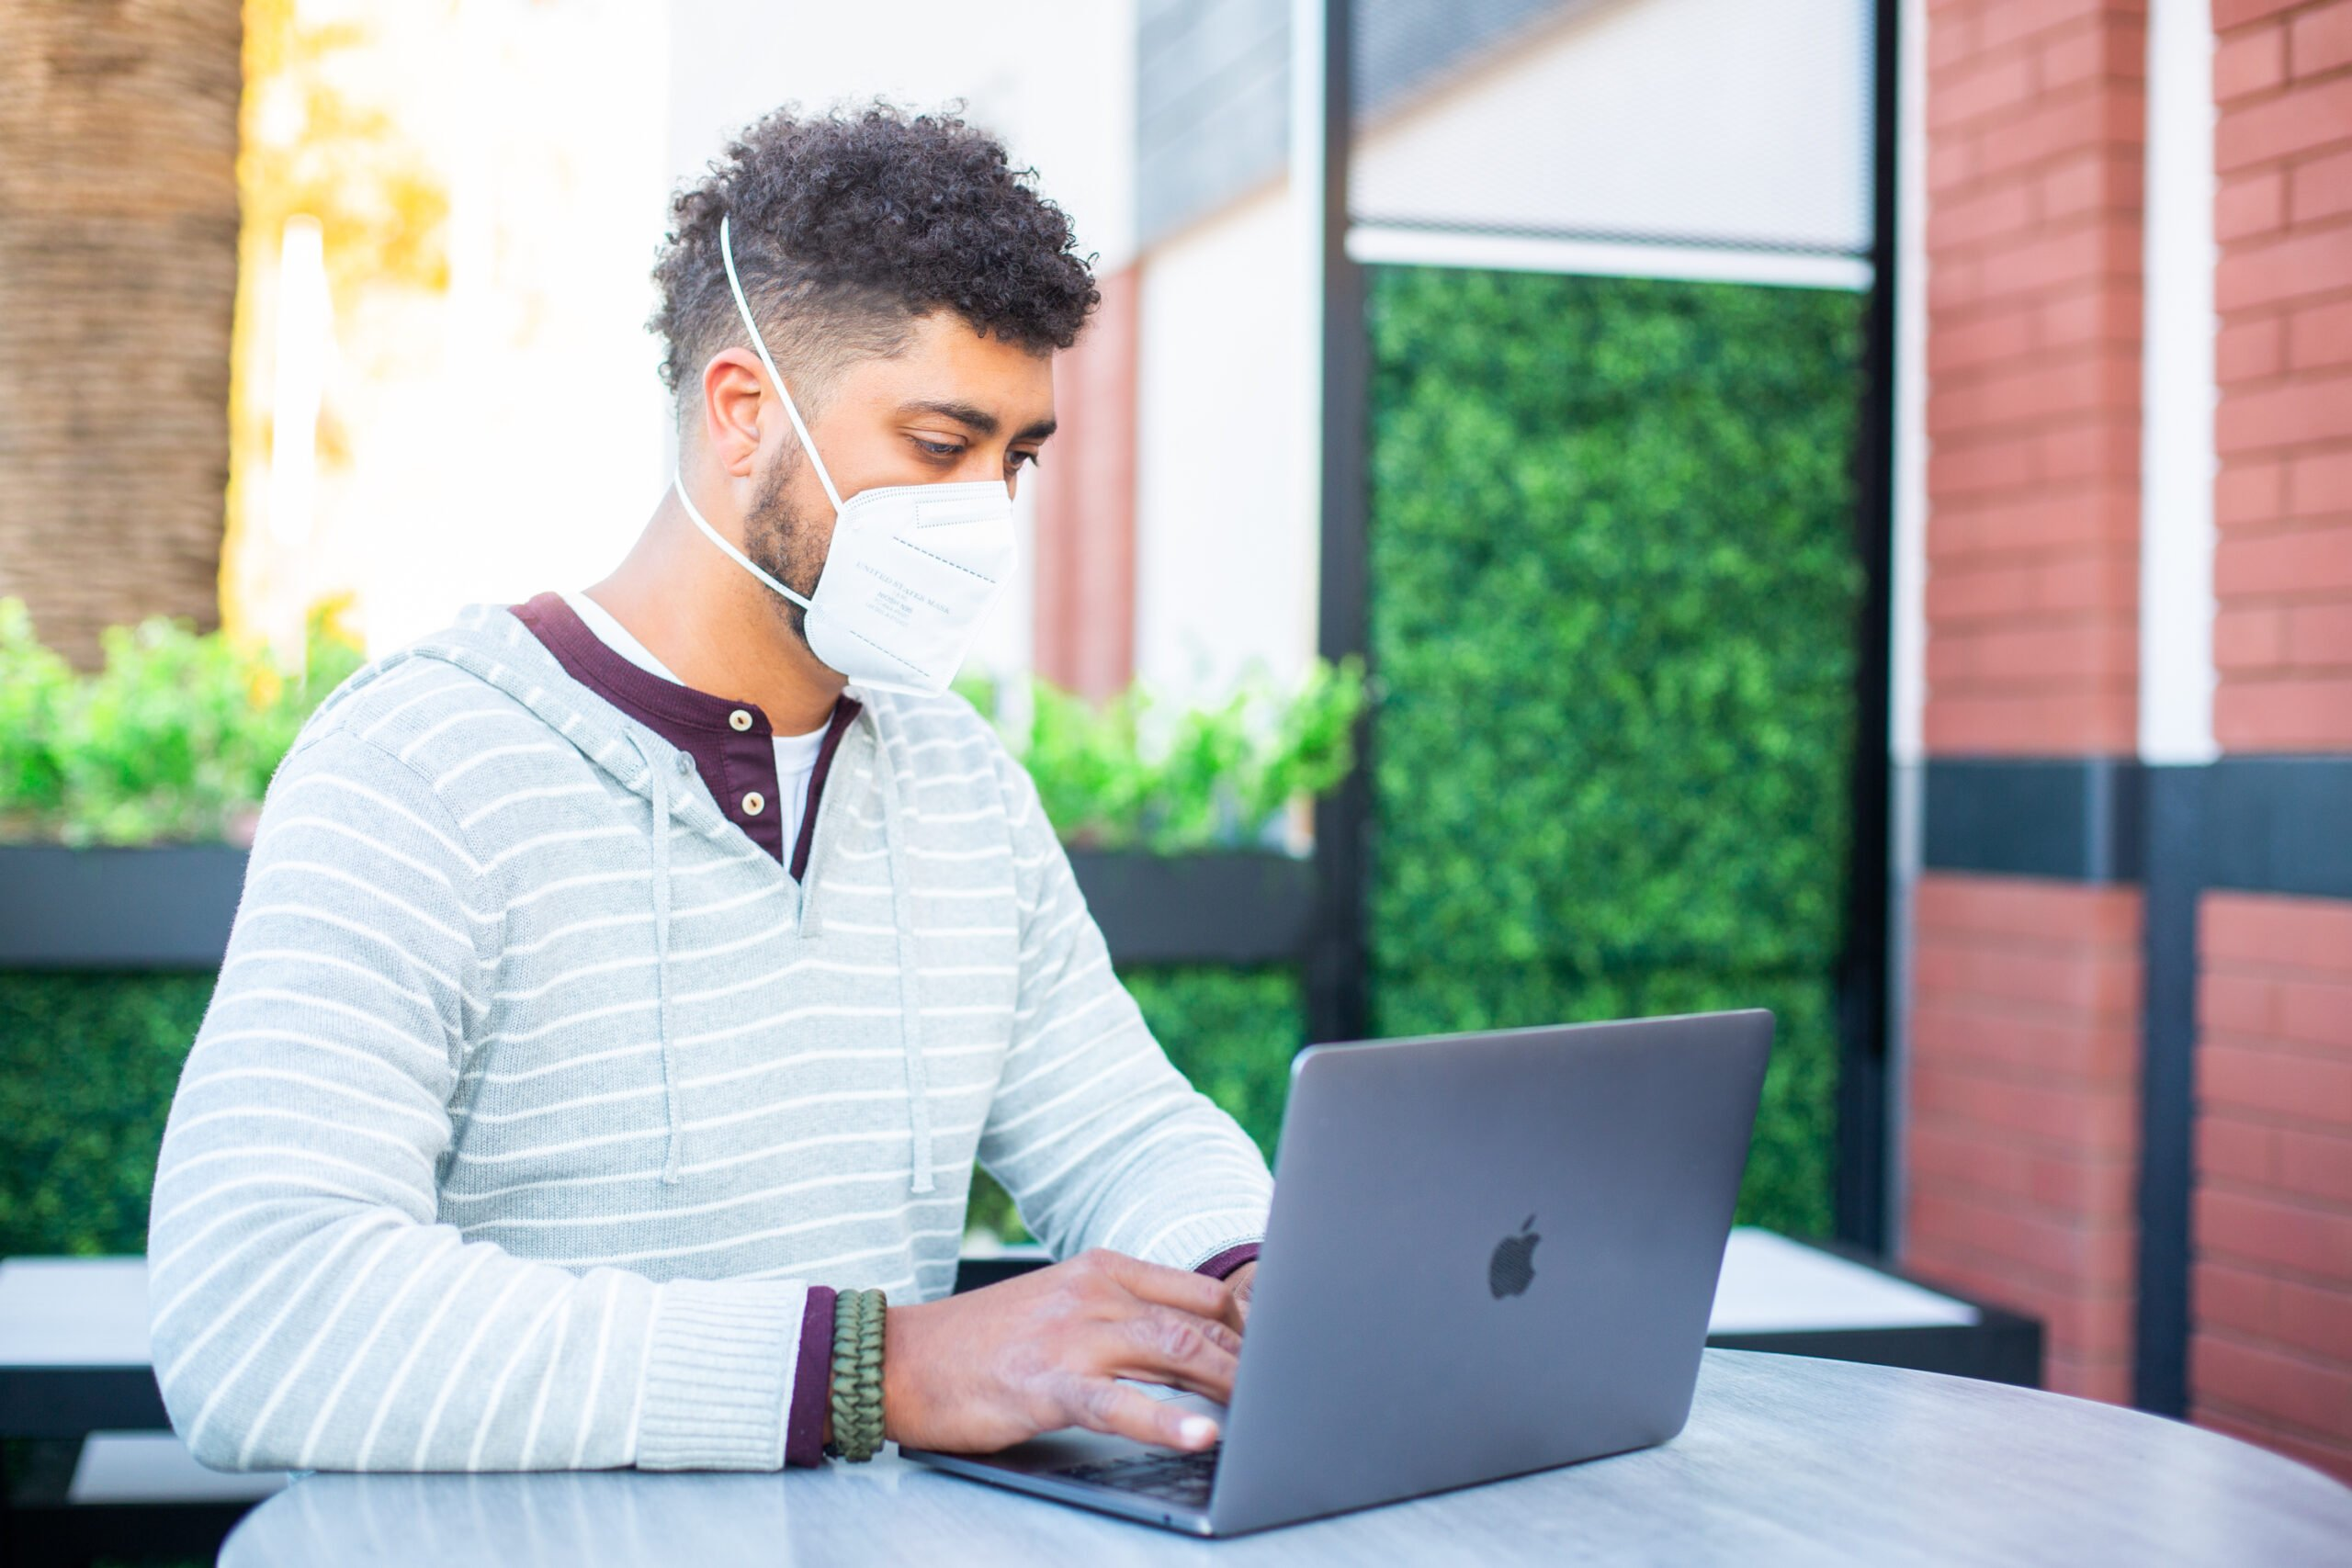 United States Mask Makes Obtaining an NIOSH-Certified, American-Made N95 Respirator an Affordable Option